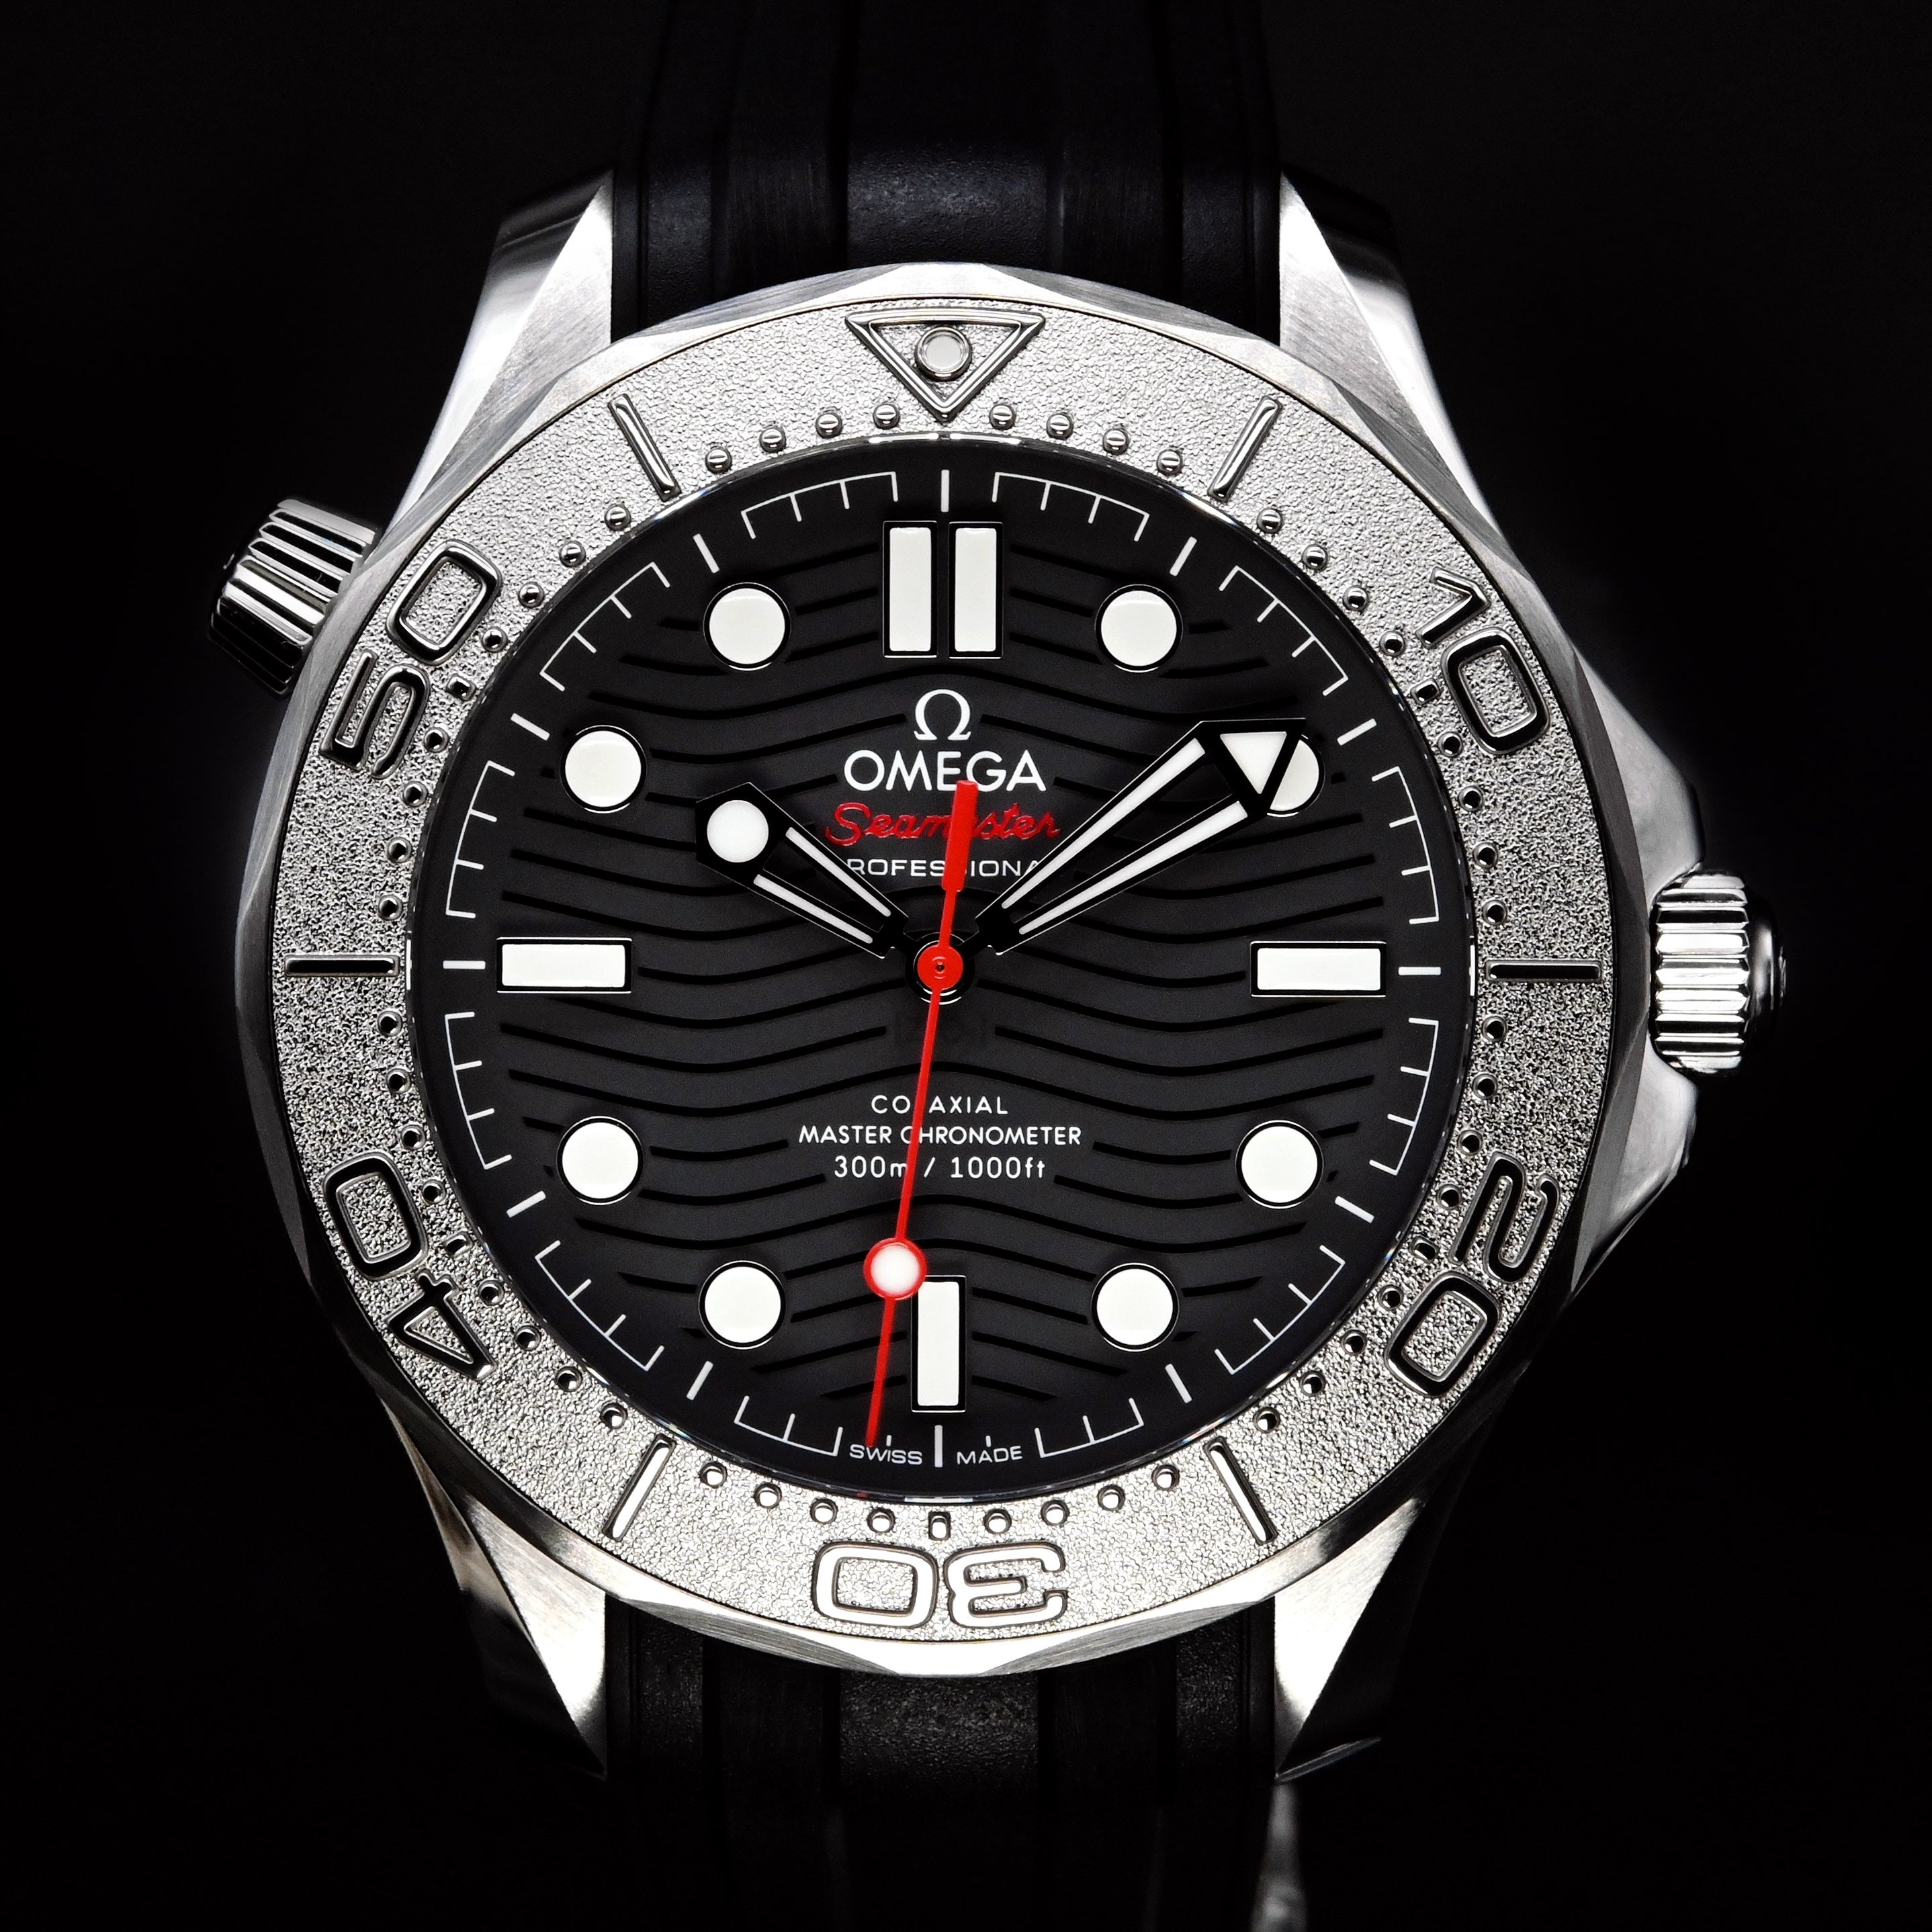 [Brand New Watch] Omega Seamaster Diver 300m Co-Axial Master Chronometer 42mm 210.32.42.20.01.002 (Nekton Edition)